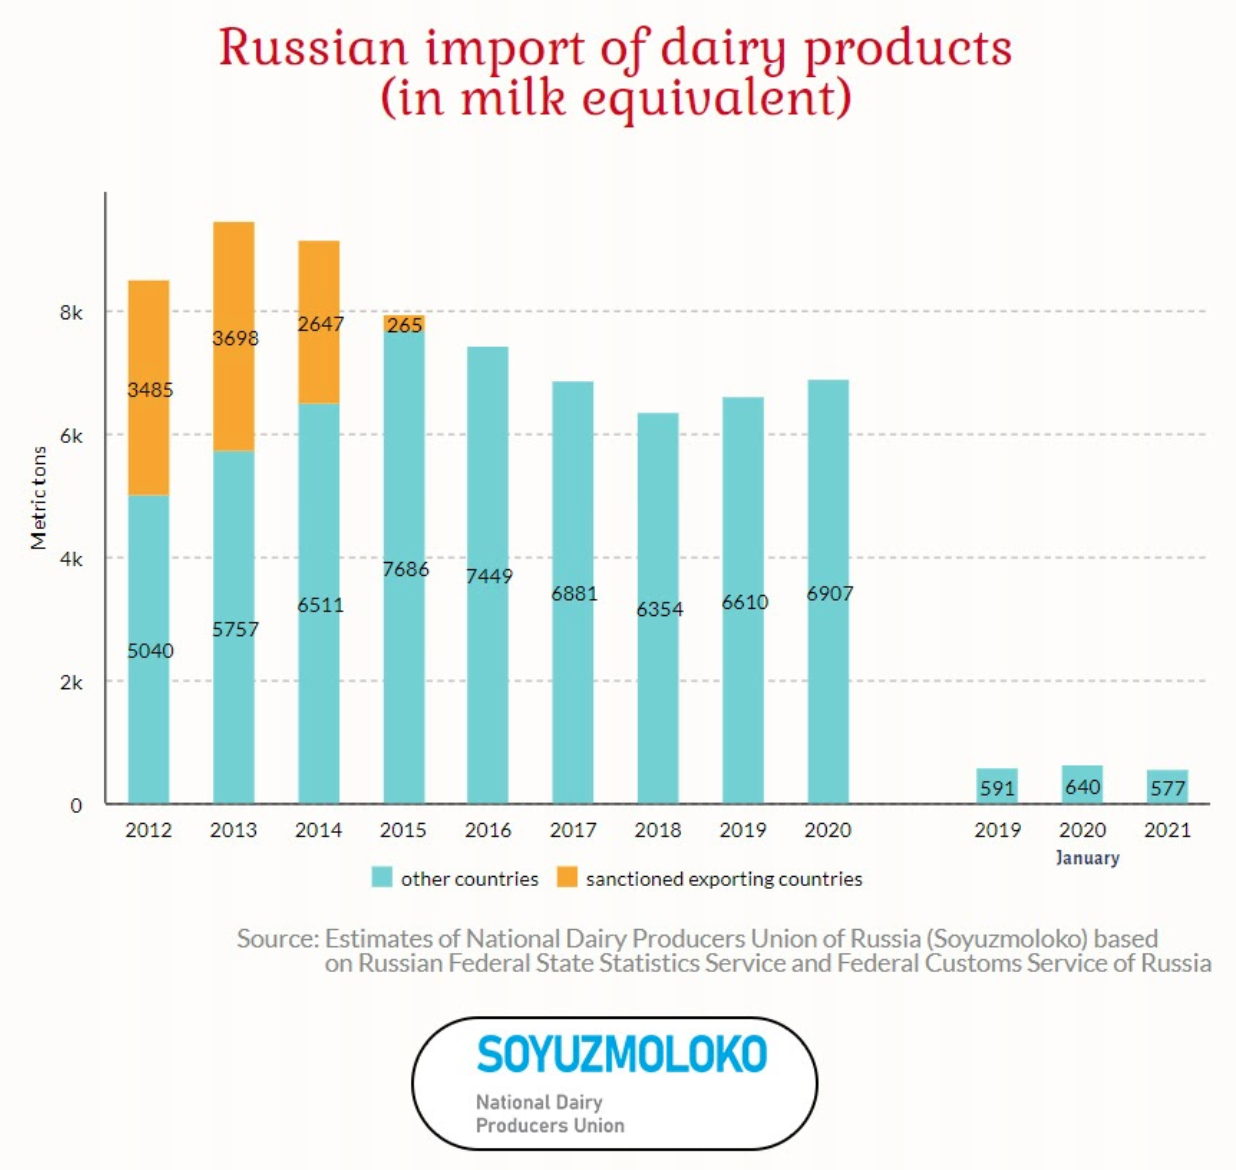 Russia decreases dairy imports by 10% in January 2021